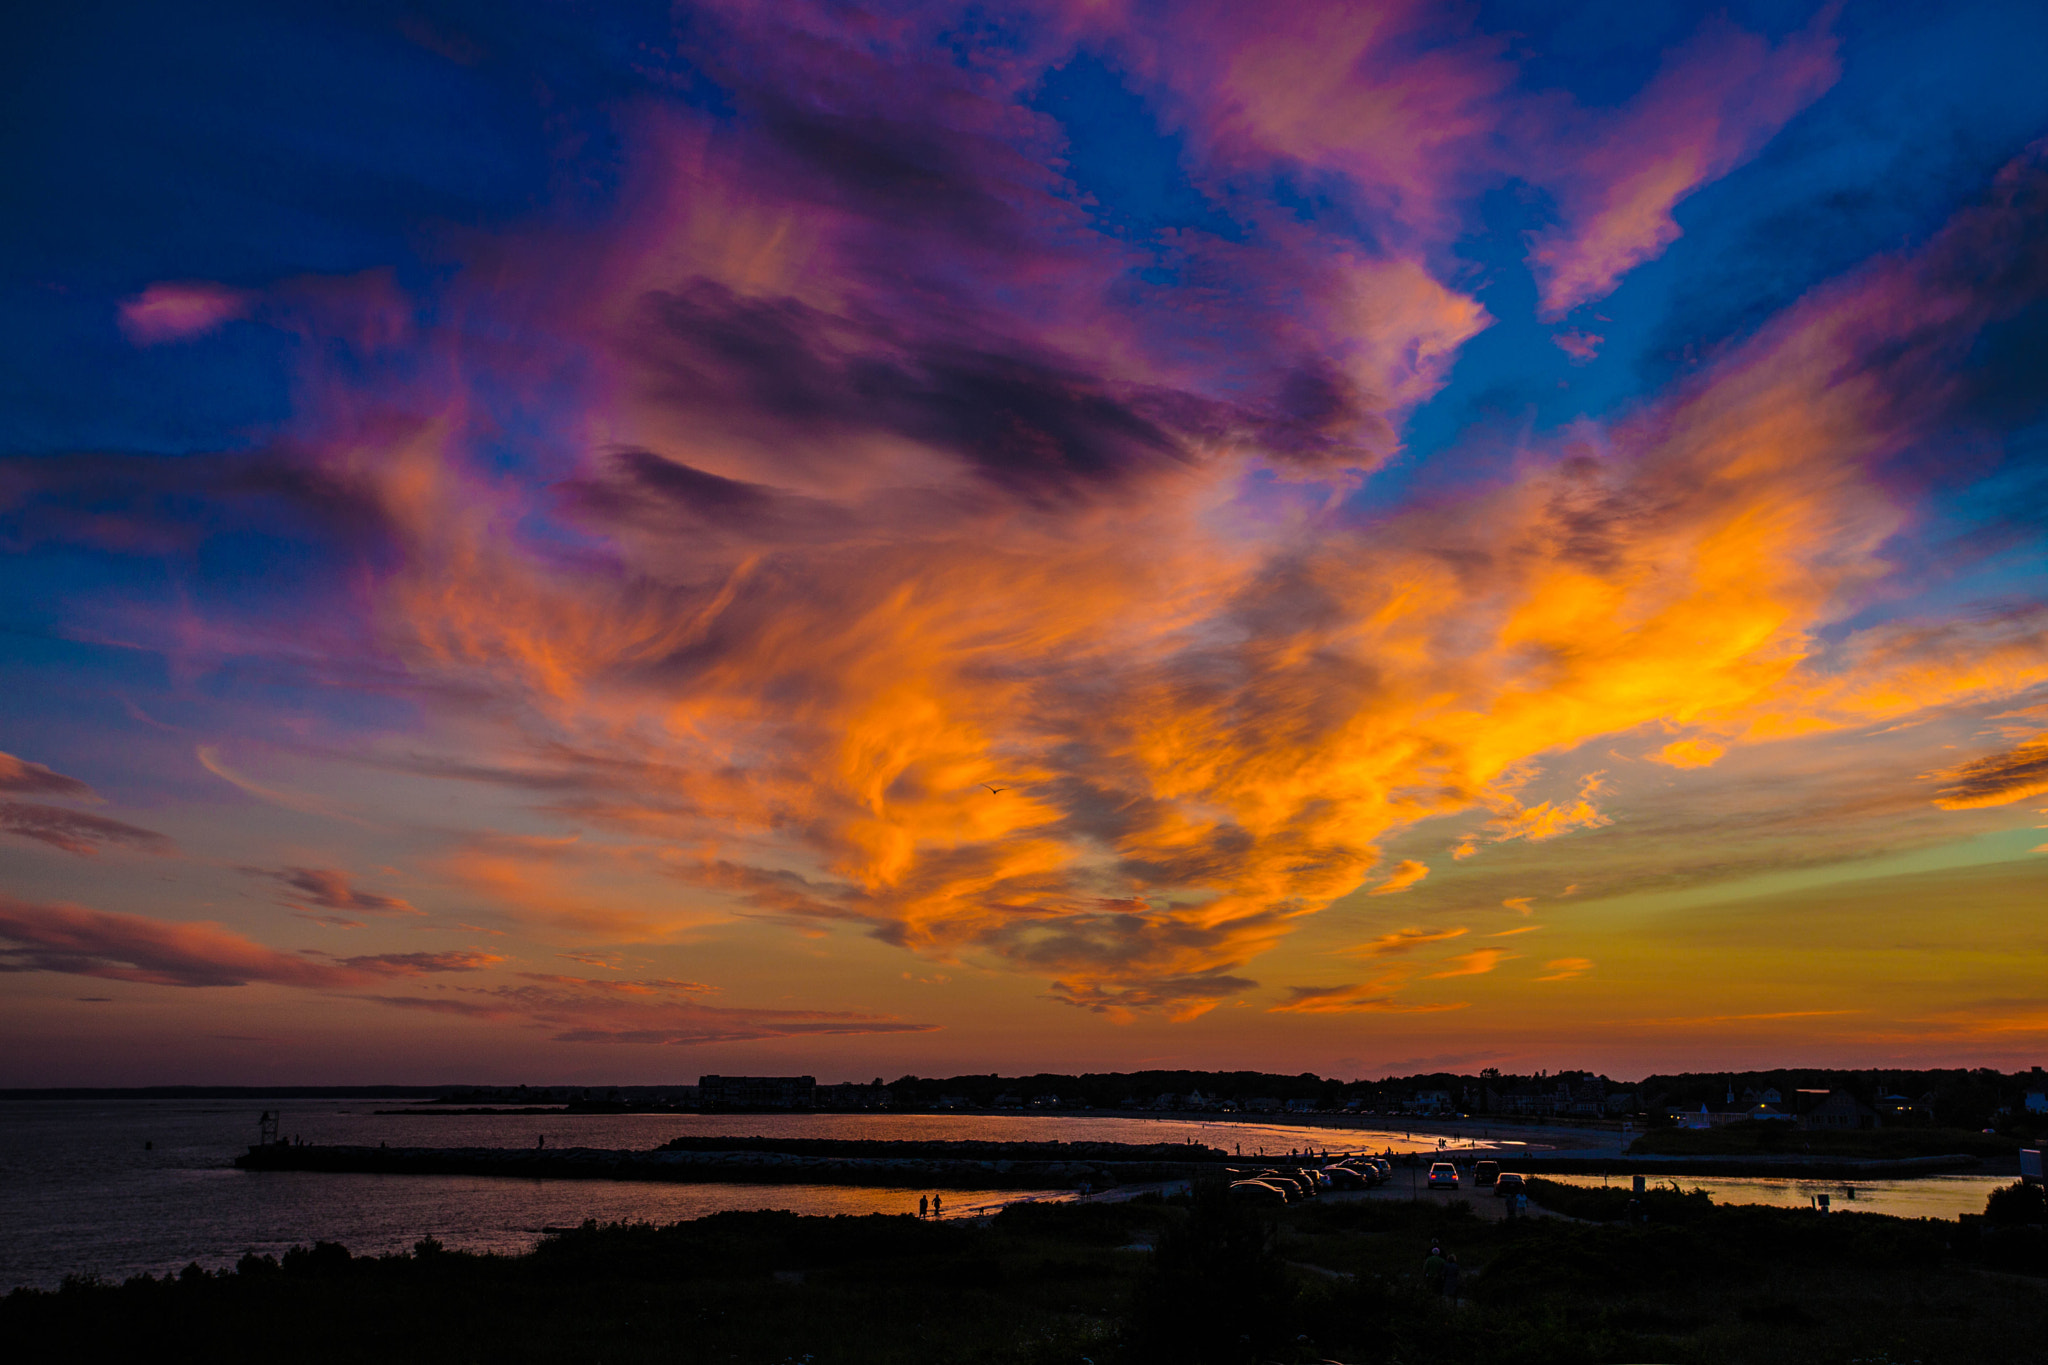 Photograph Sunset over Kennebunkport (Maine) by John Hoey on 500px